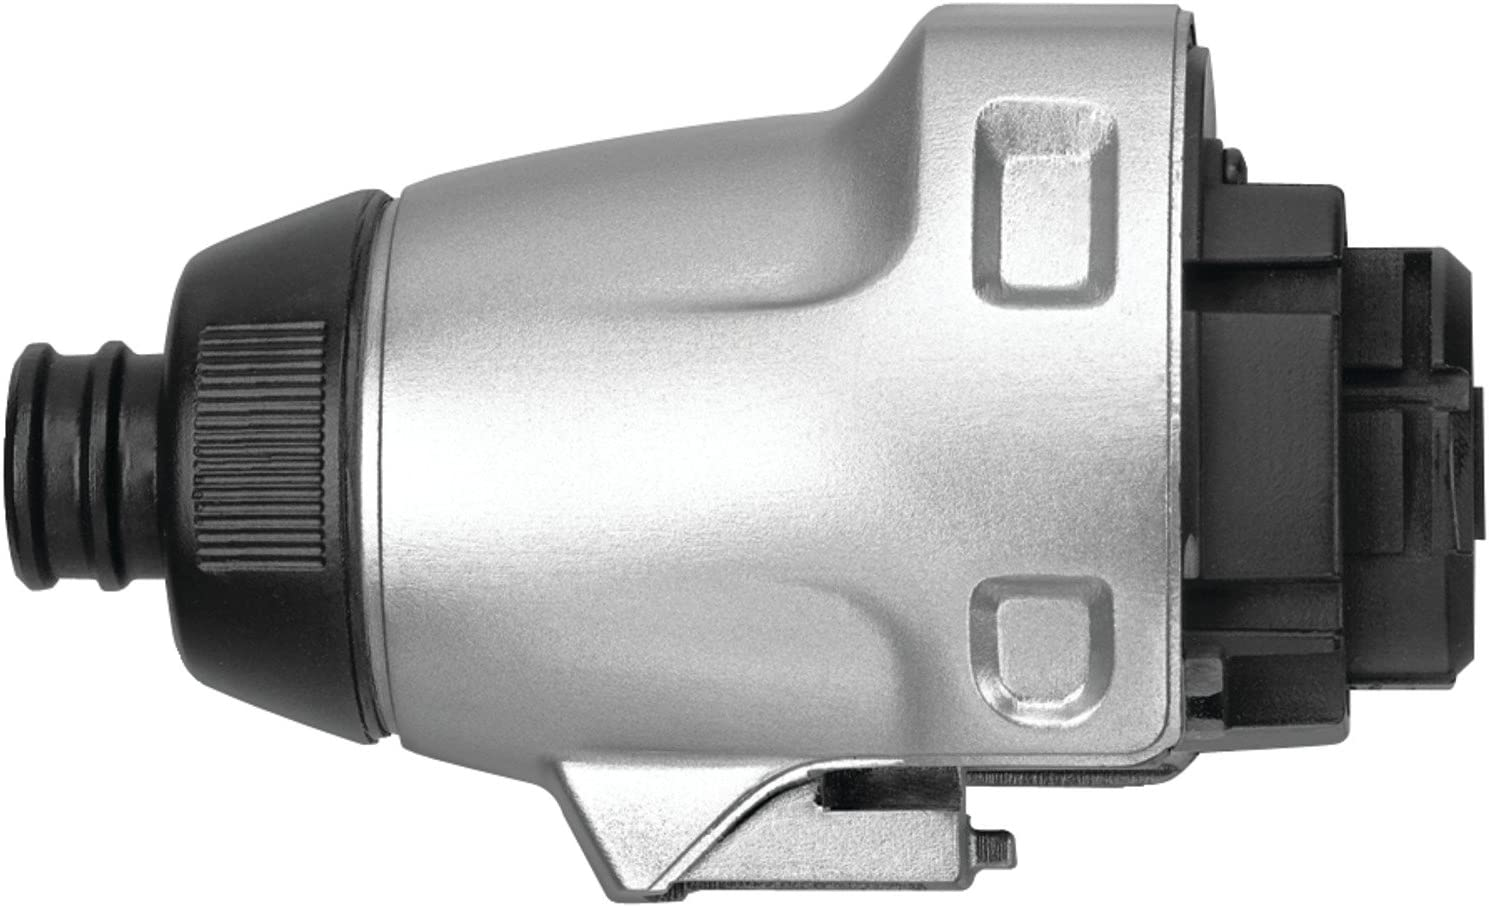 BLACK DECKER BDCMTI Matrix Impact Driver Attachment